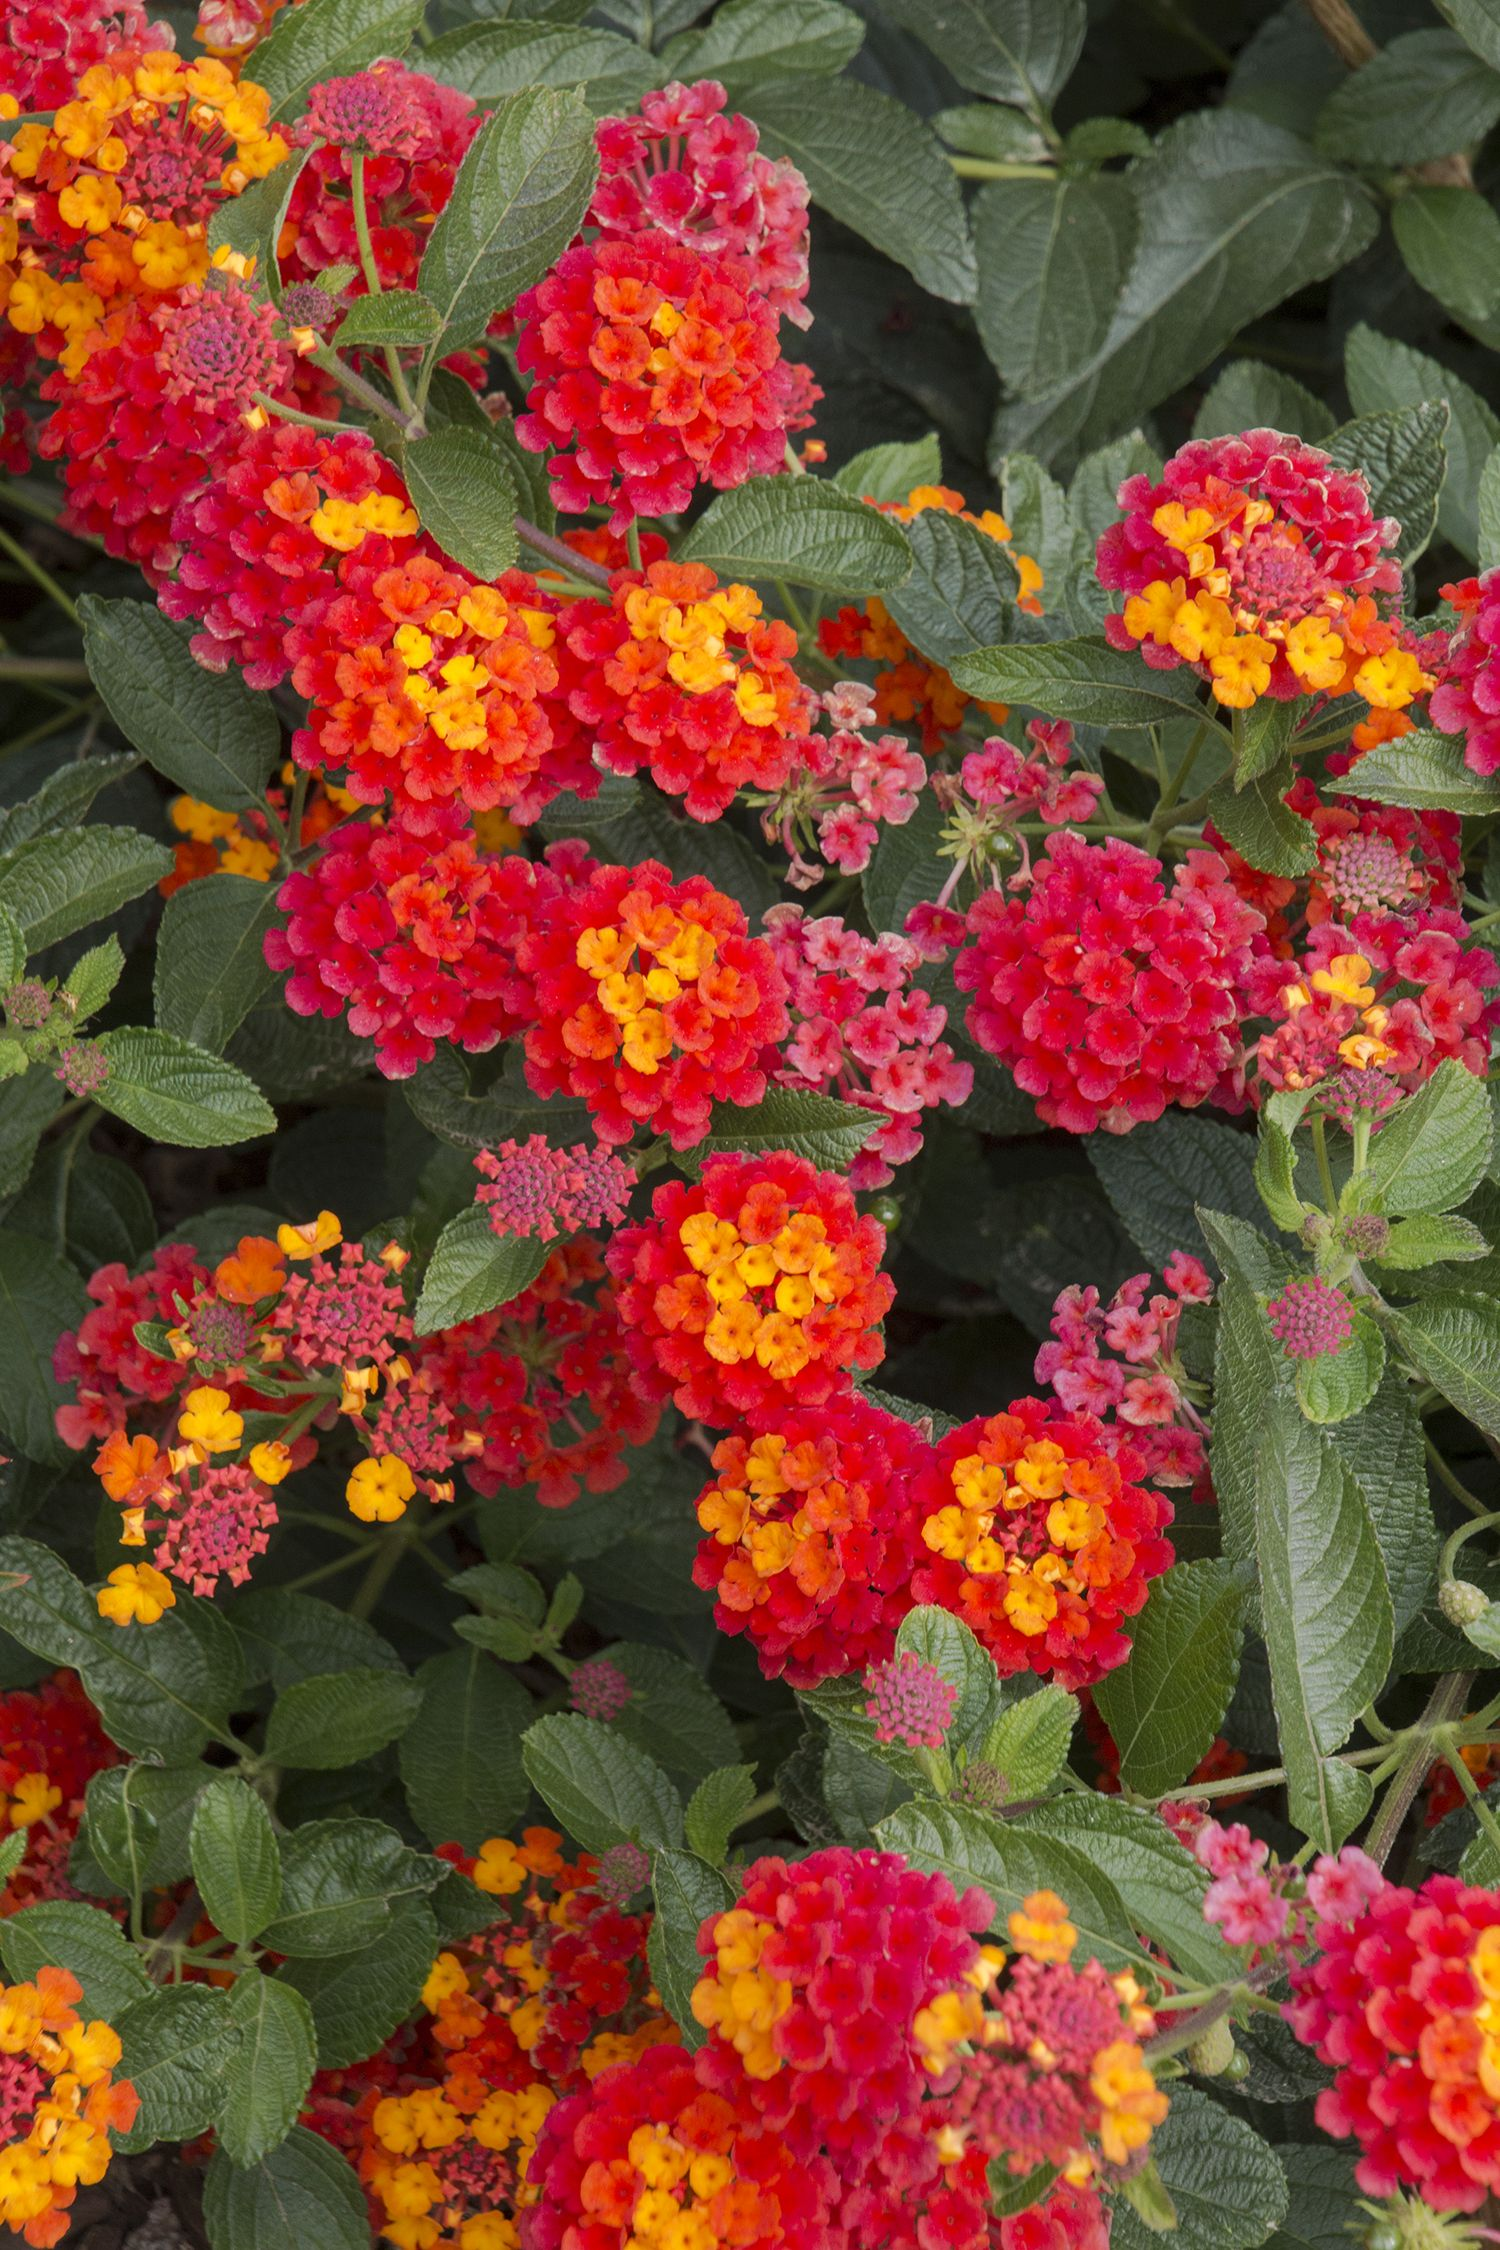 Radiation Bush Lantana All Year Long Blooms With Images Lantana Plant Lantana Flowers